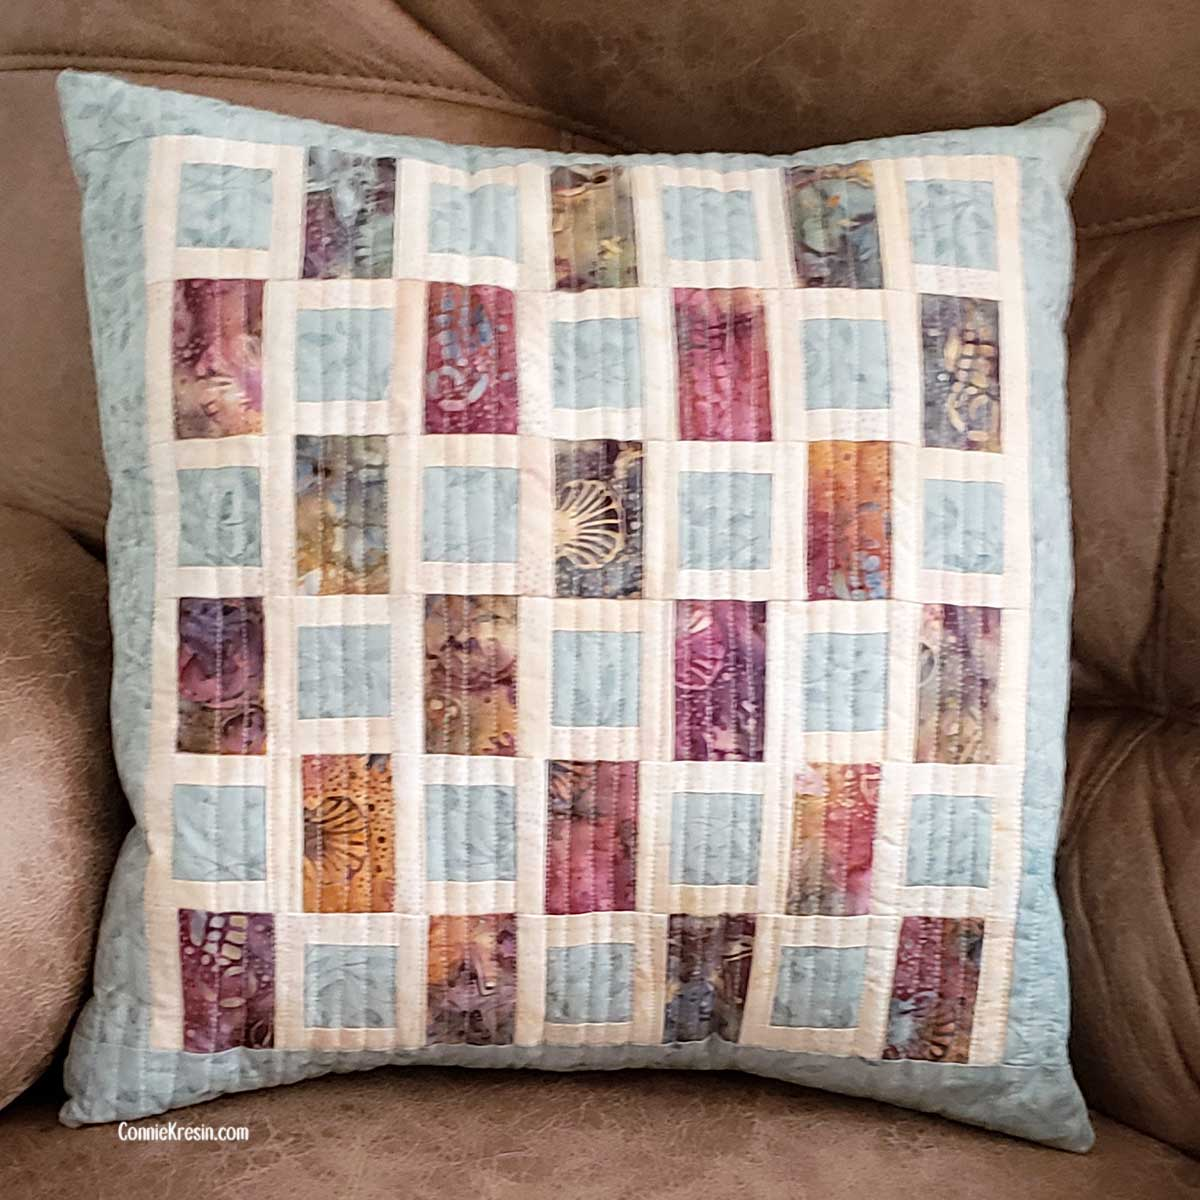 Brick Road Pillow turned vertically